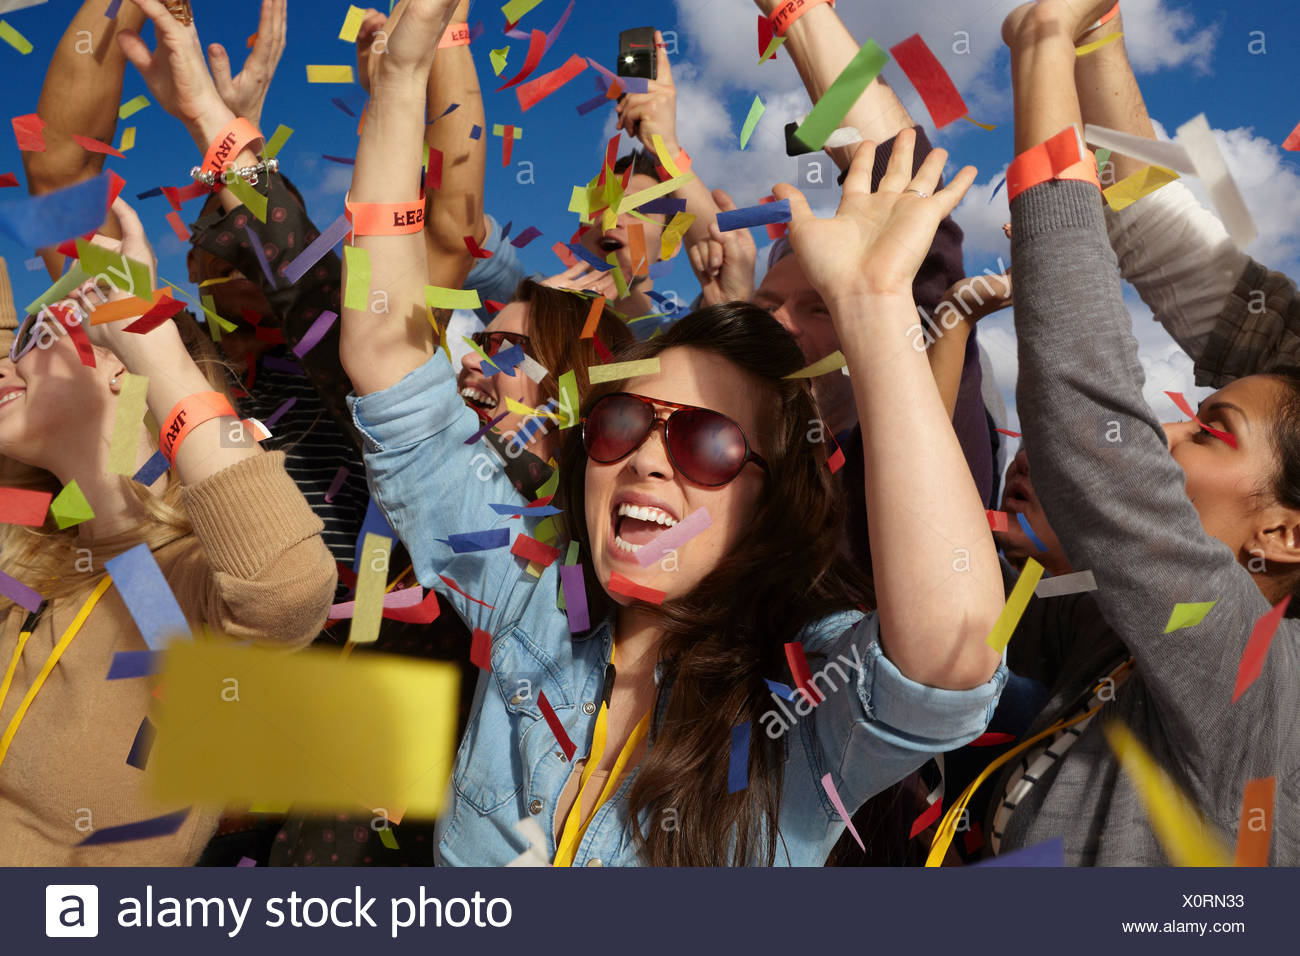 People cheering at a music festival - Stock Image